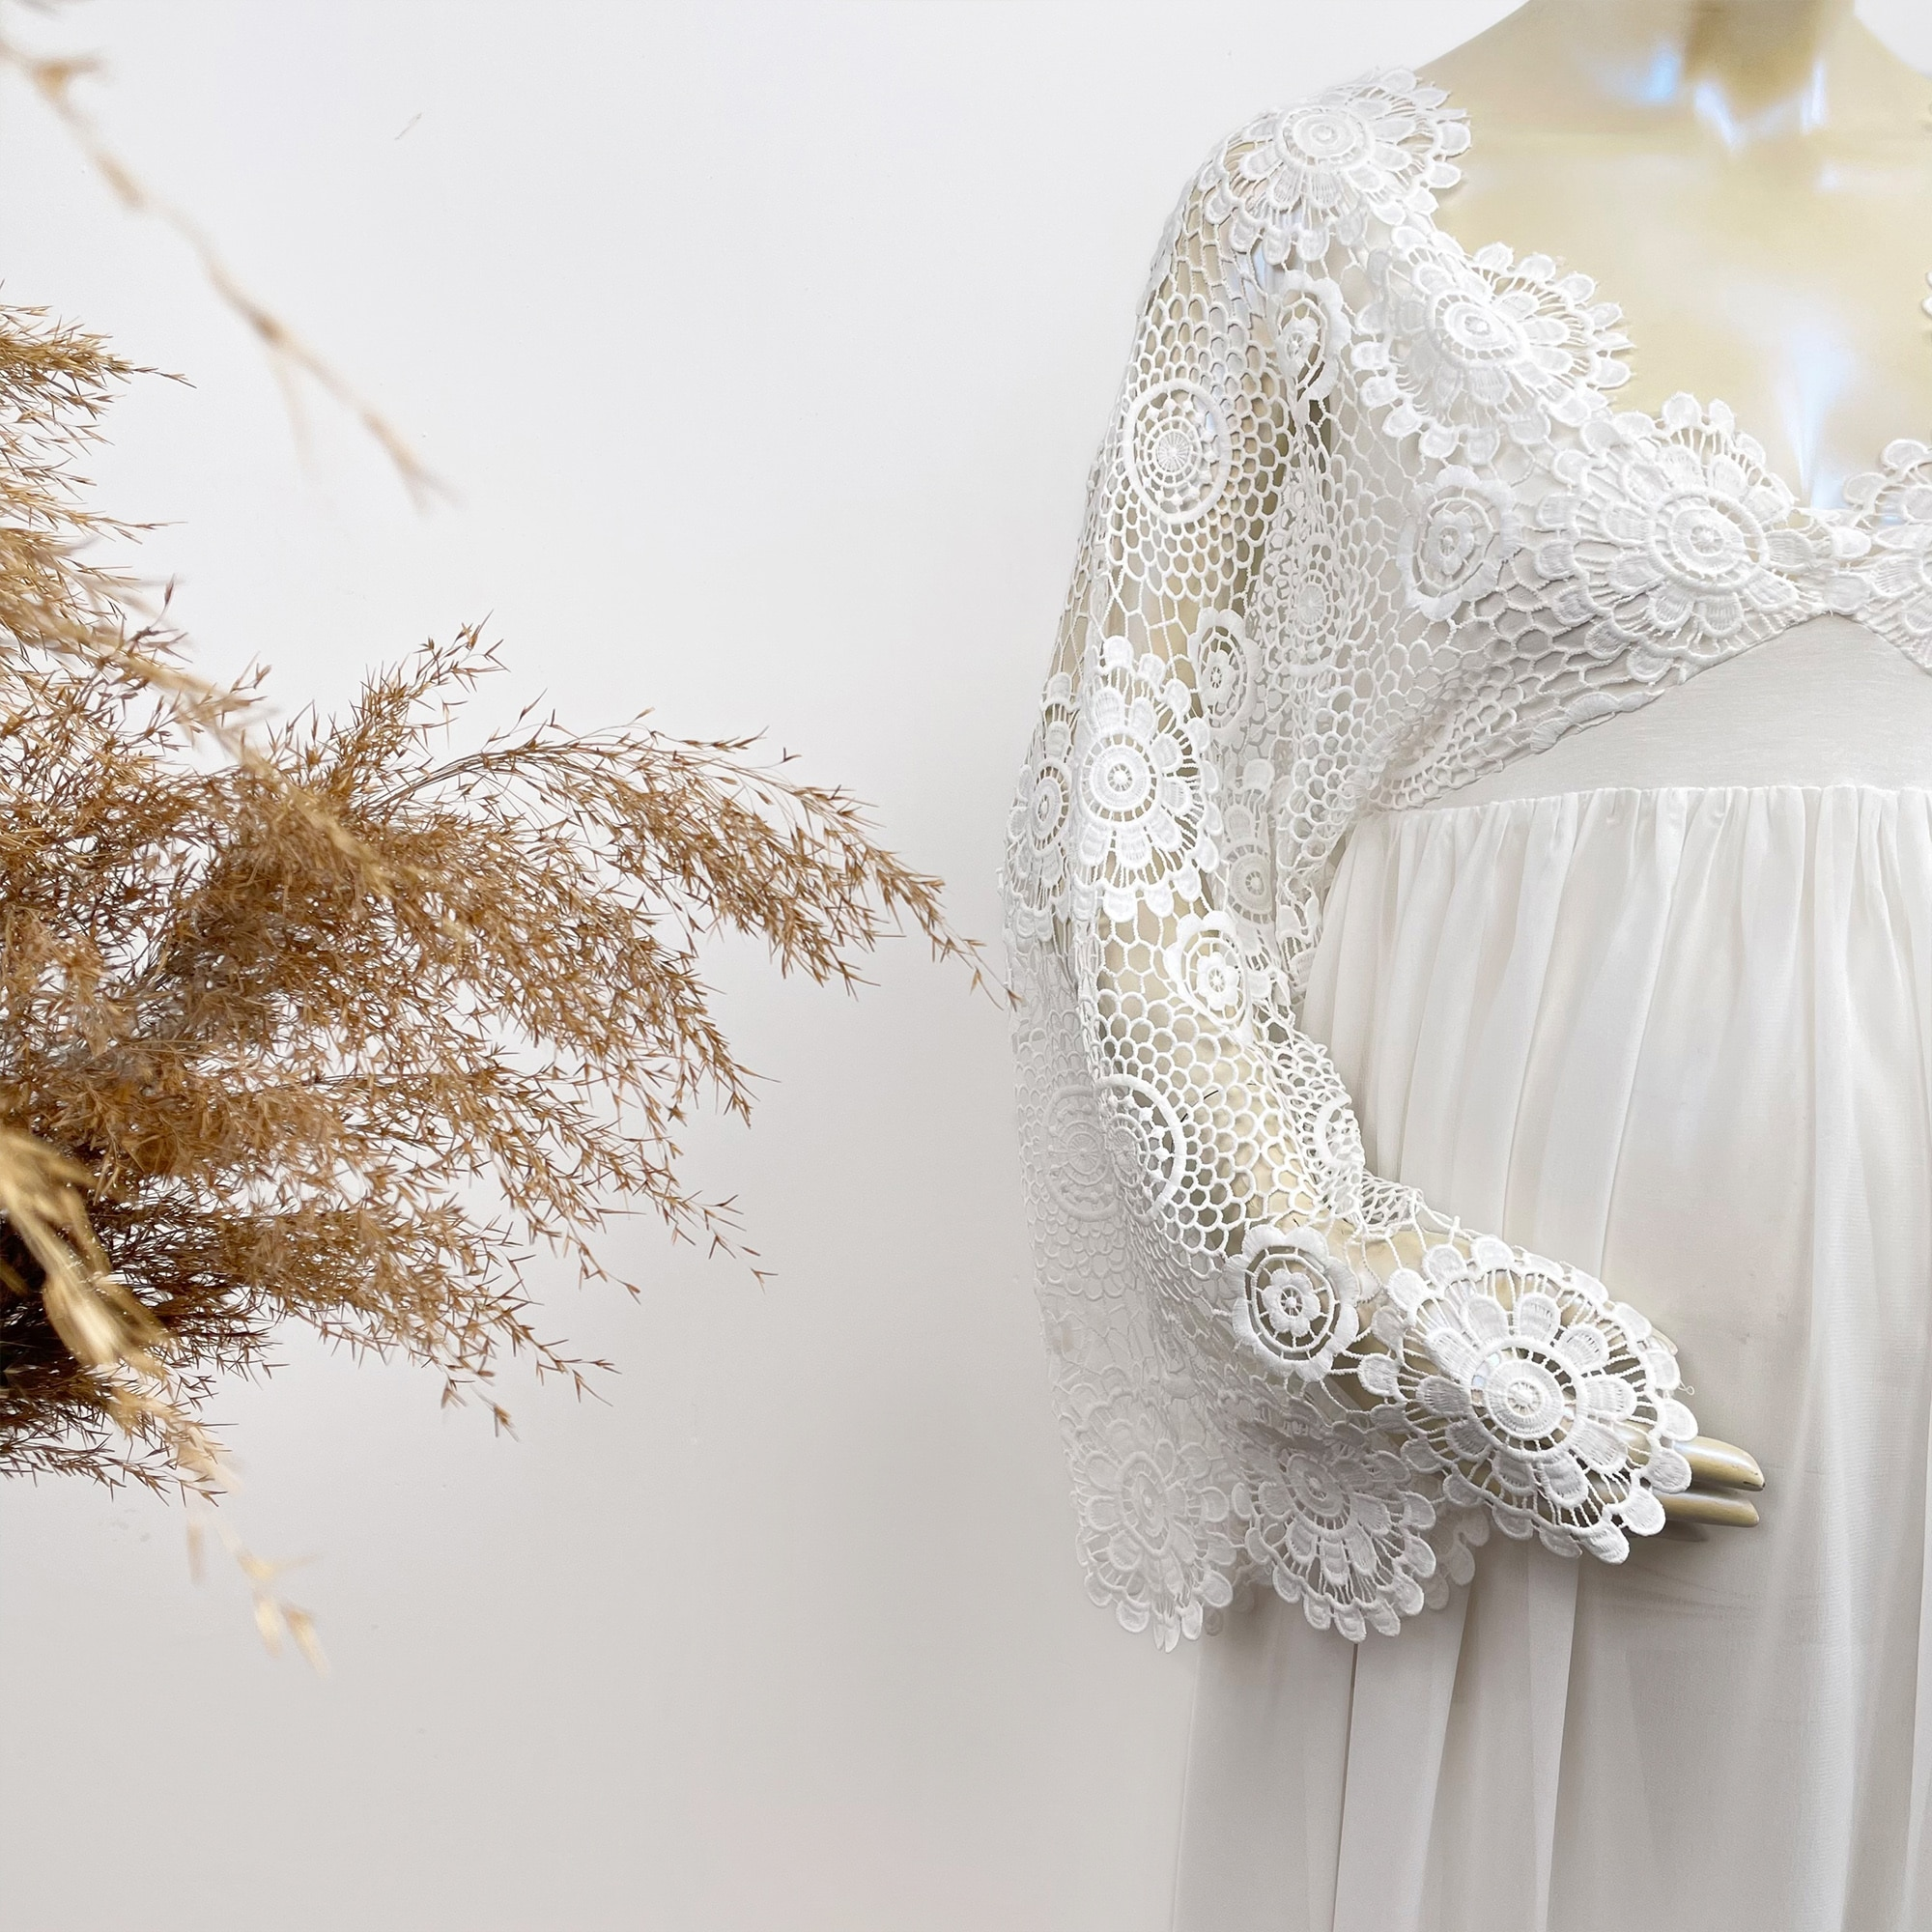 Photo Shoot Chiffon Robe Long Sleeves Embroidery Maternity Dresses Evening Party White Costume for Women Photography Accessories enlarge